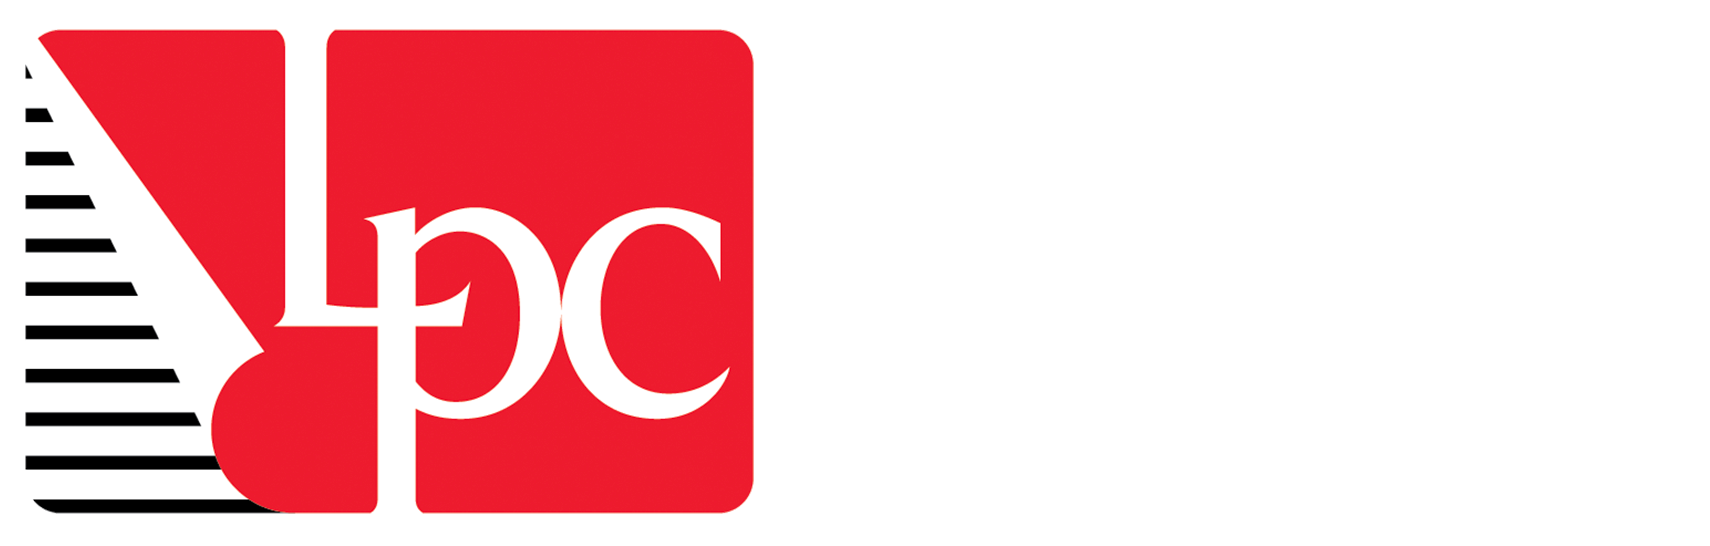 Livestock Publications Council